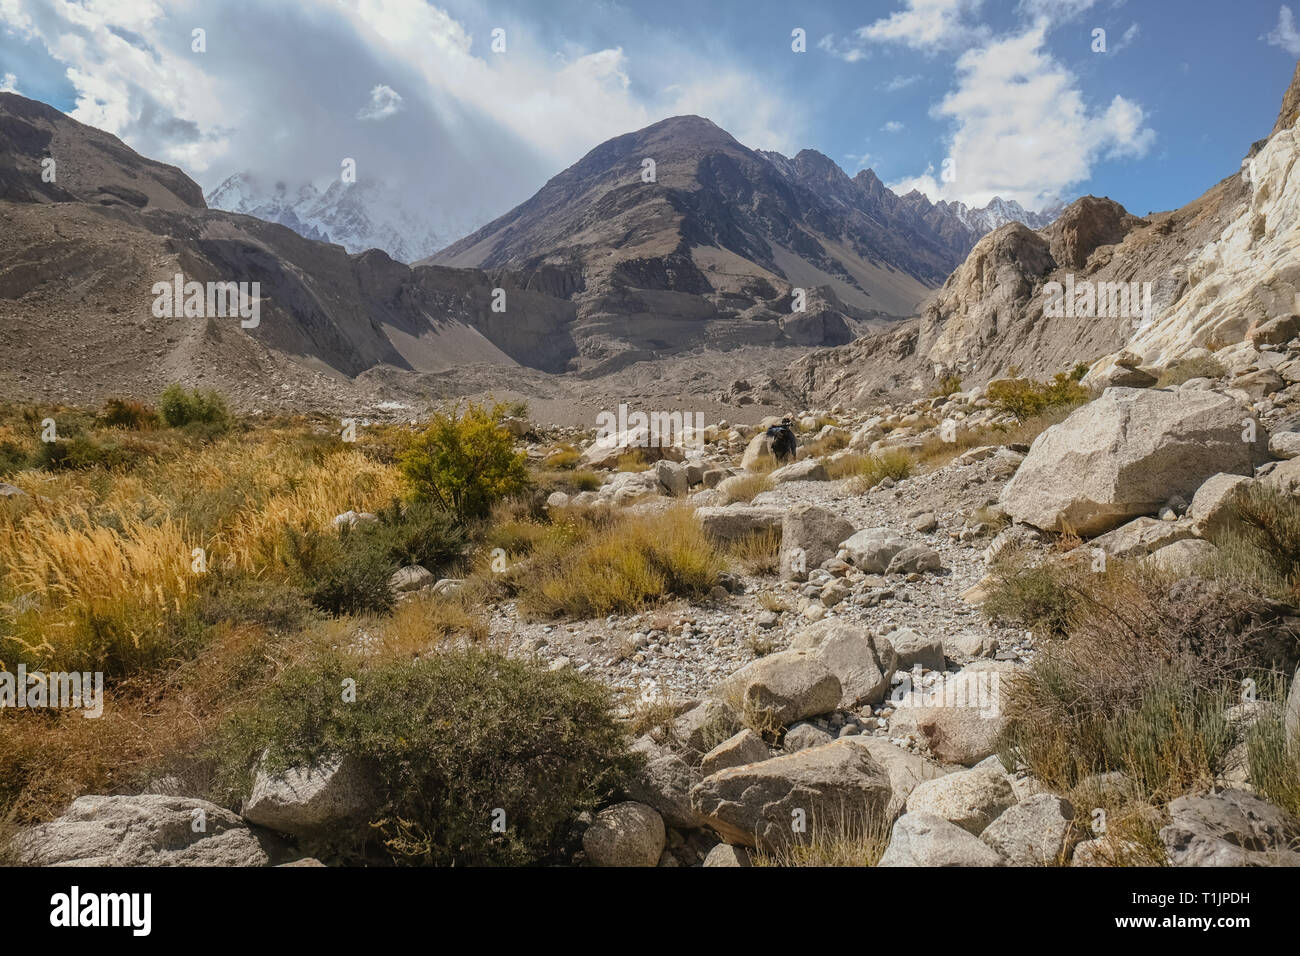 Landscape view of wilderness area in Passu trekking trail surrounded by mountains. Gojal Upper Hunza. Gilgit Baltistan, Pakistan. Stock Photo